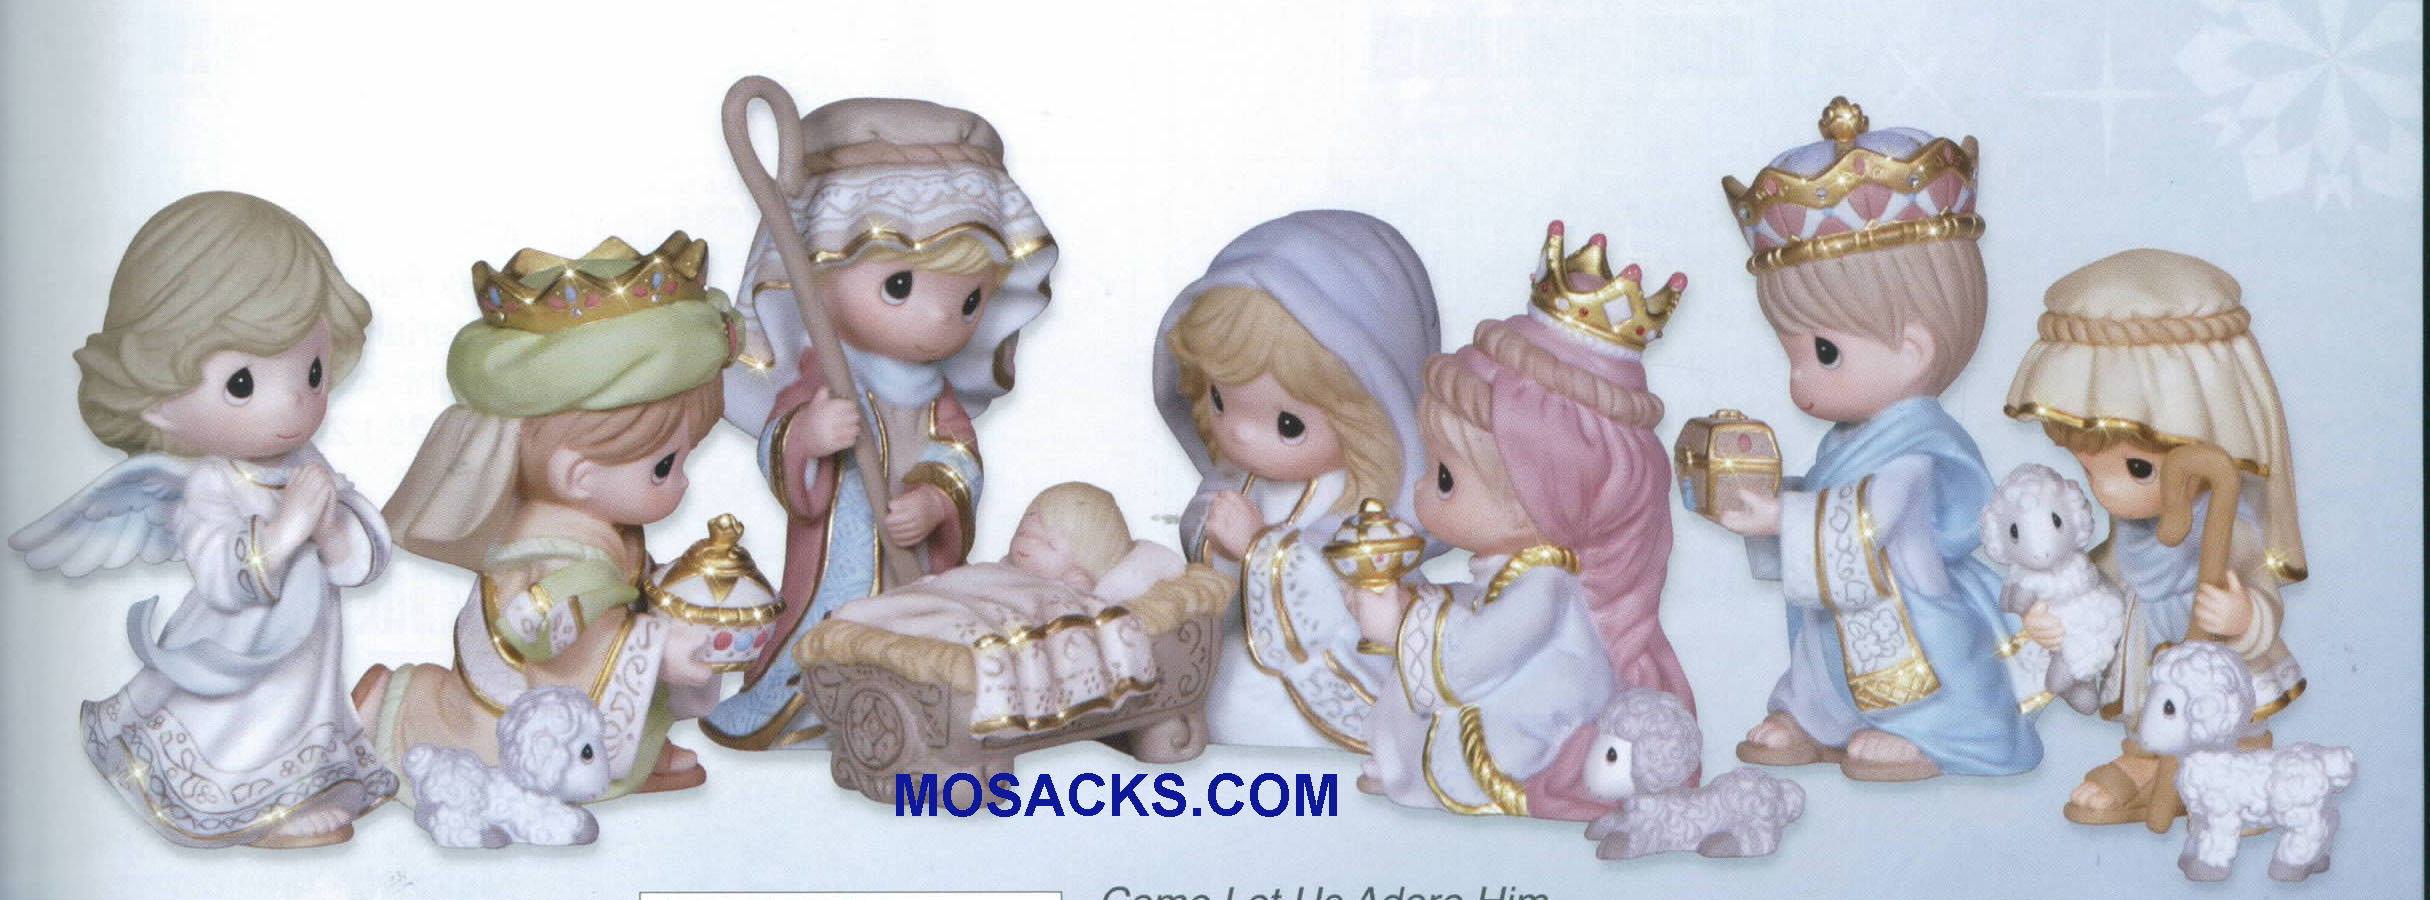 "Precious Moments Mini Nativity Come Let Us Adore Him 3.75"" H 131064"